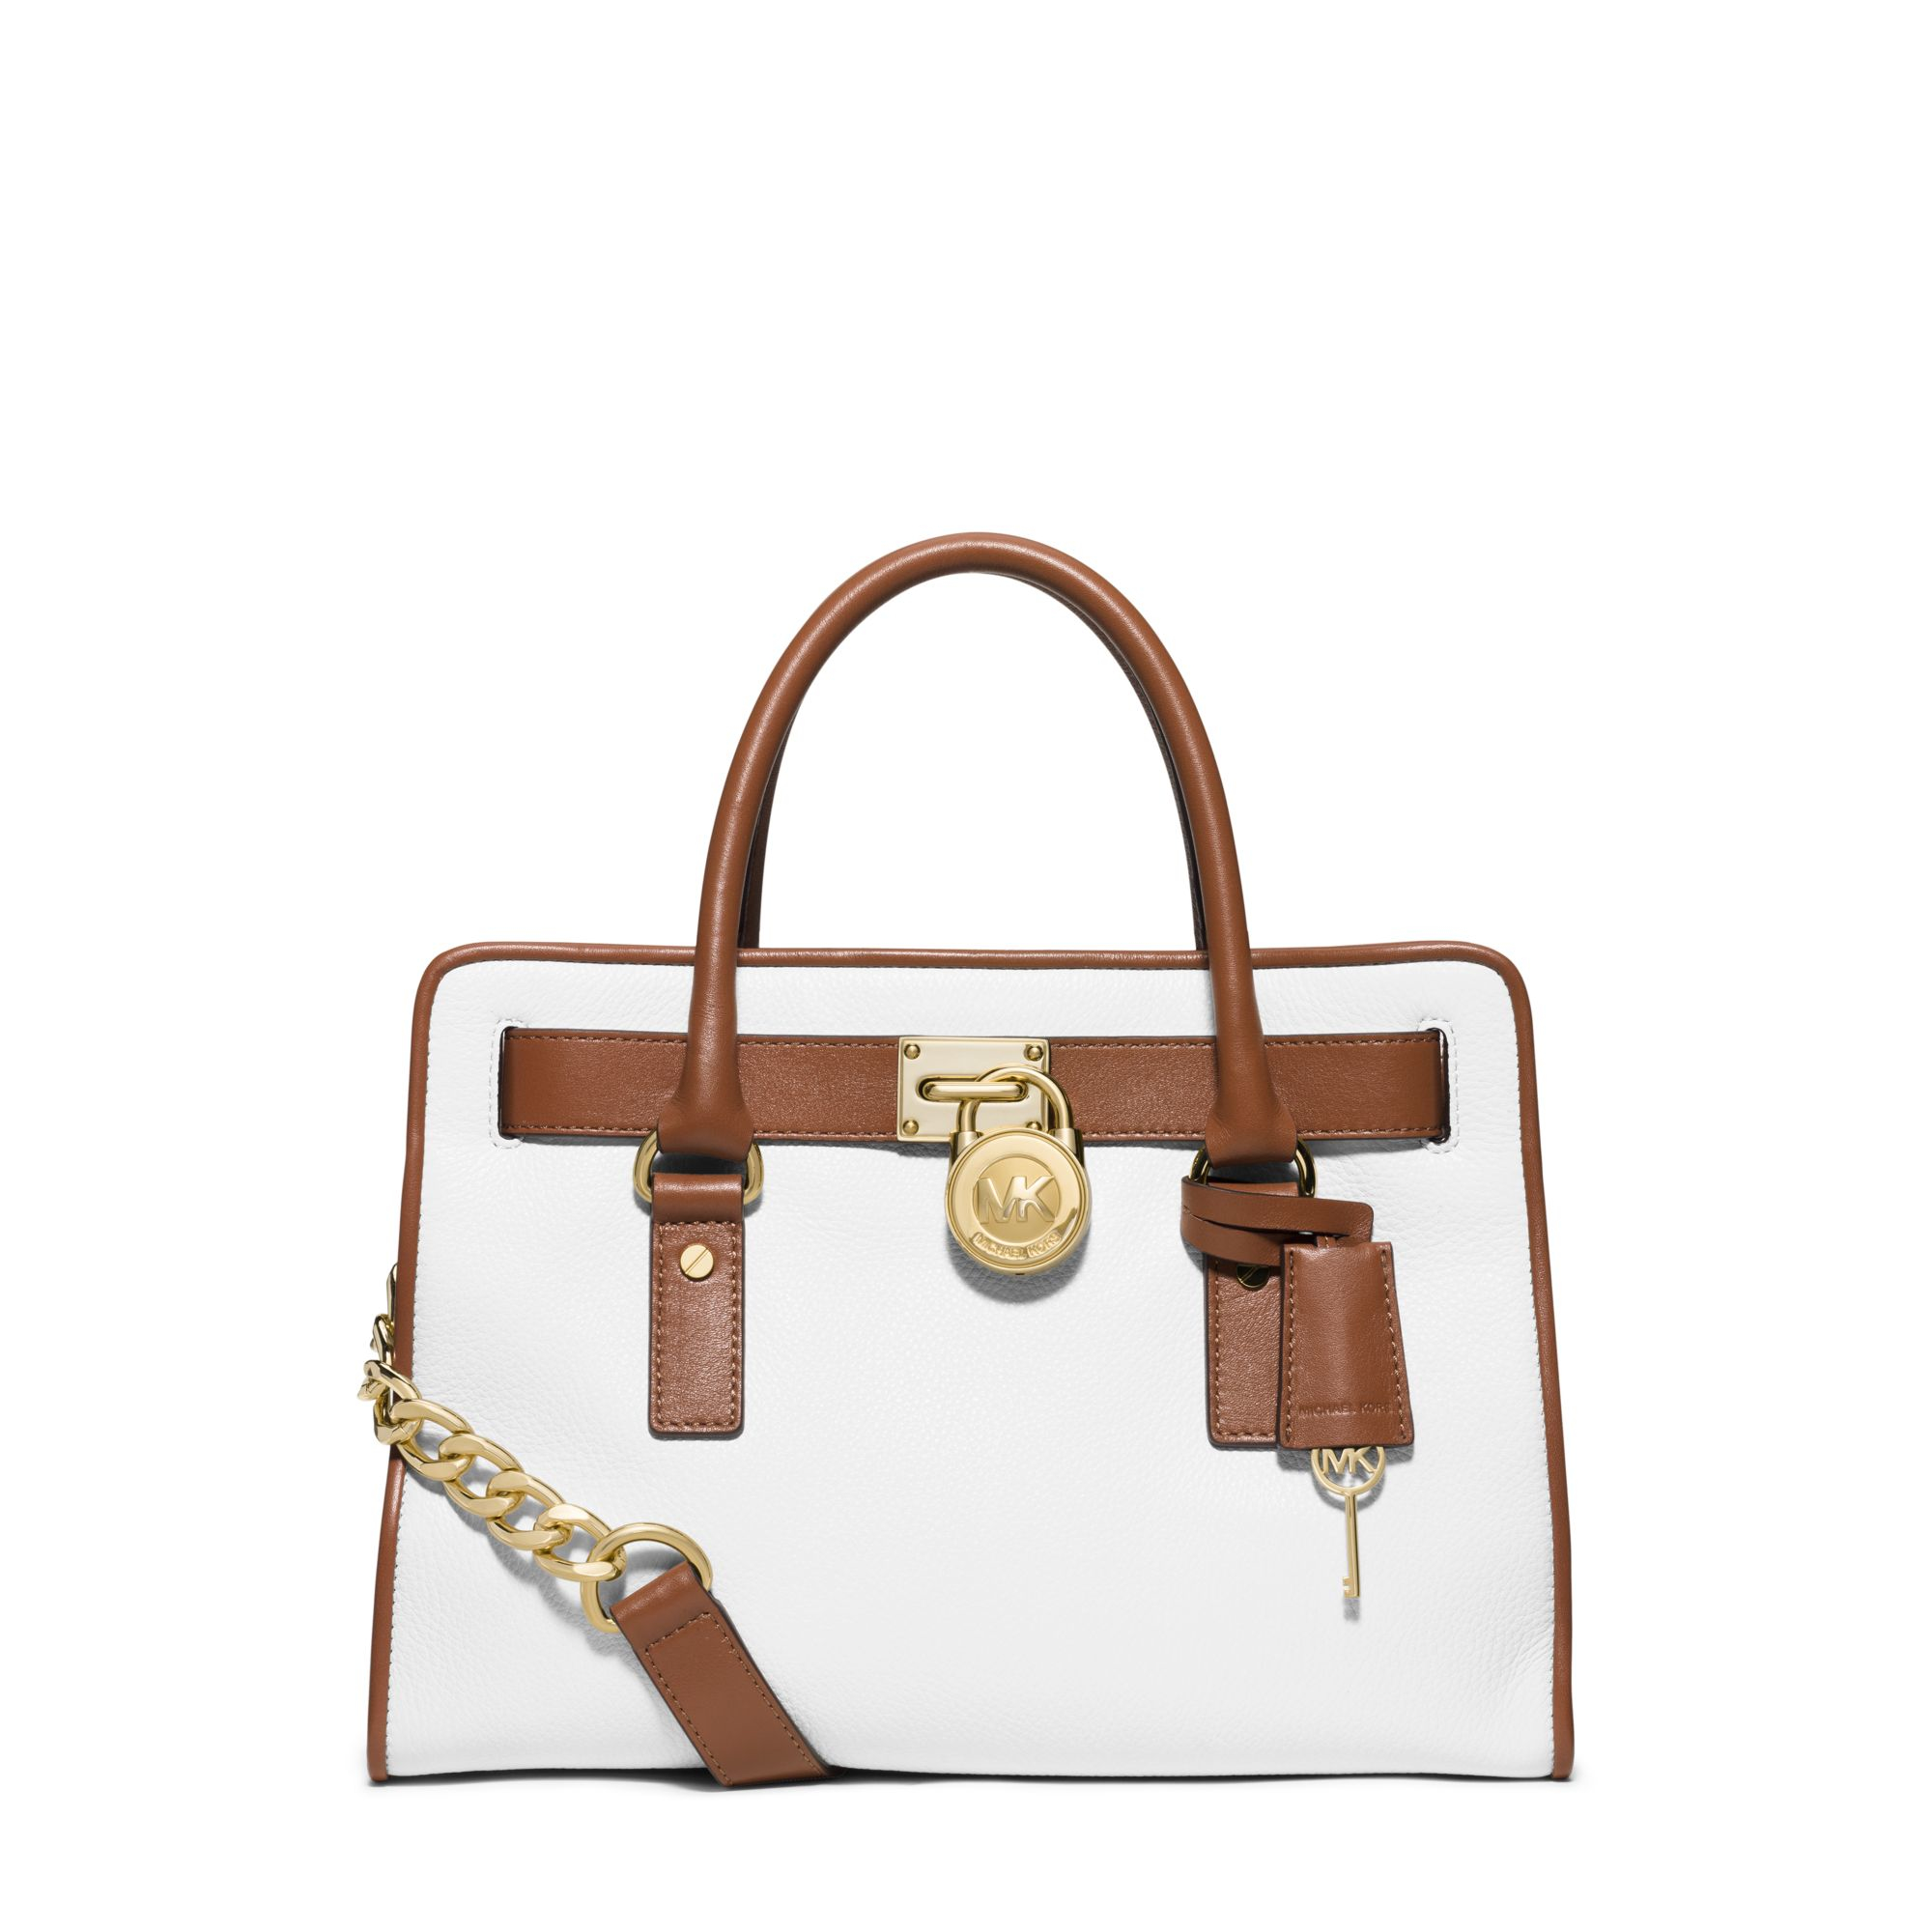 627016b6de20 Lyst - Michael Kors Hamilton Two-tone Leather Satchel in White